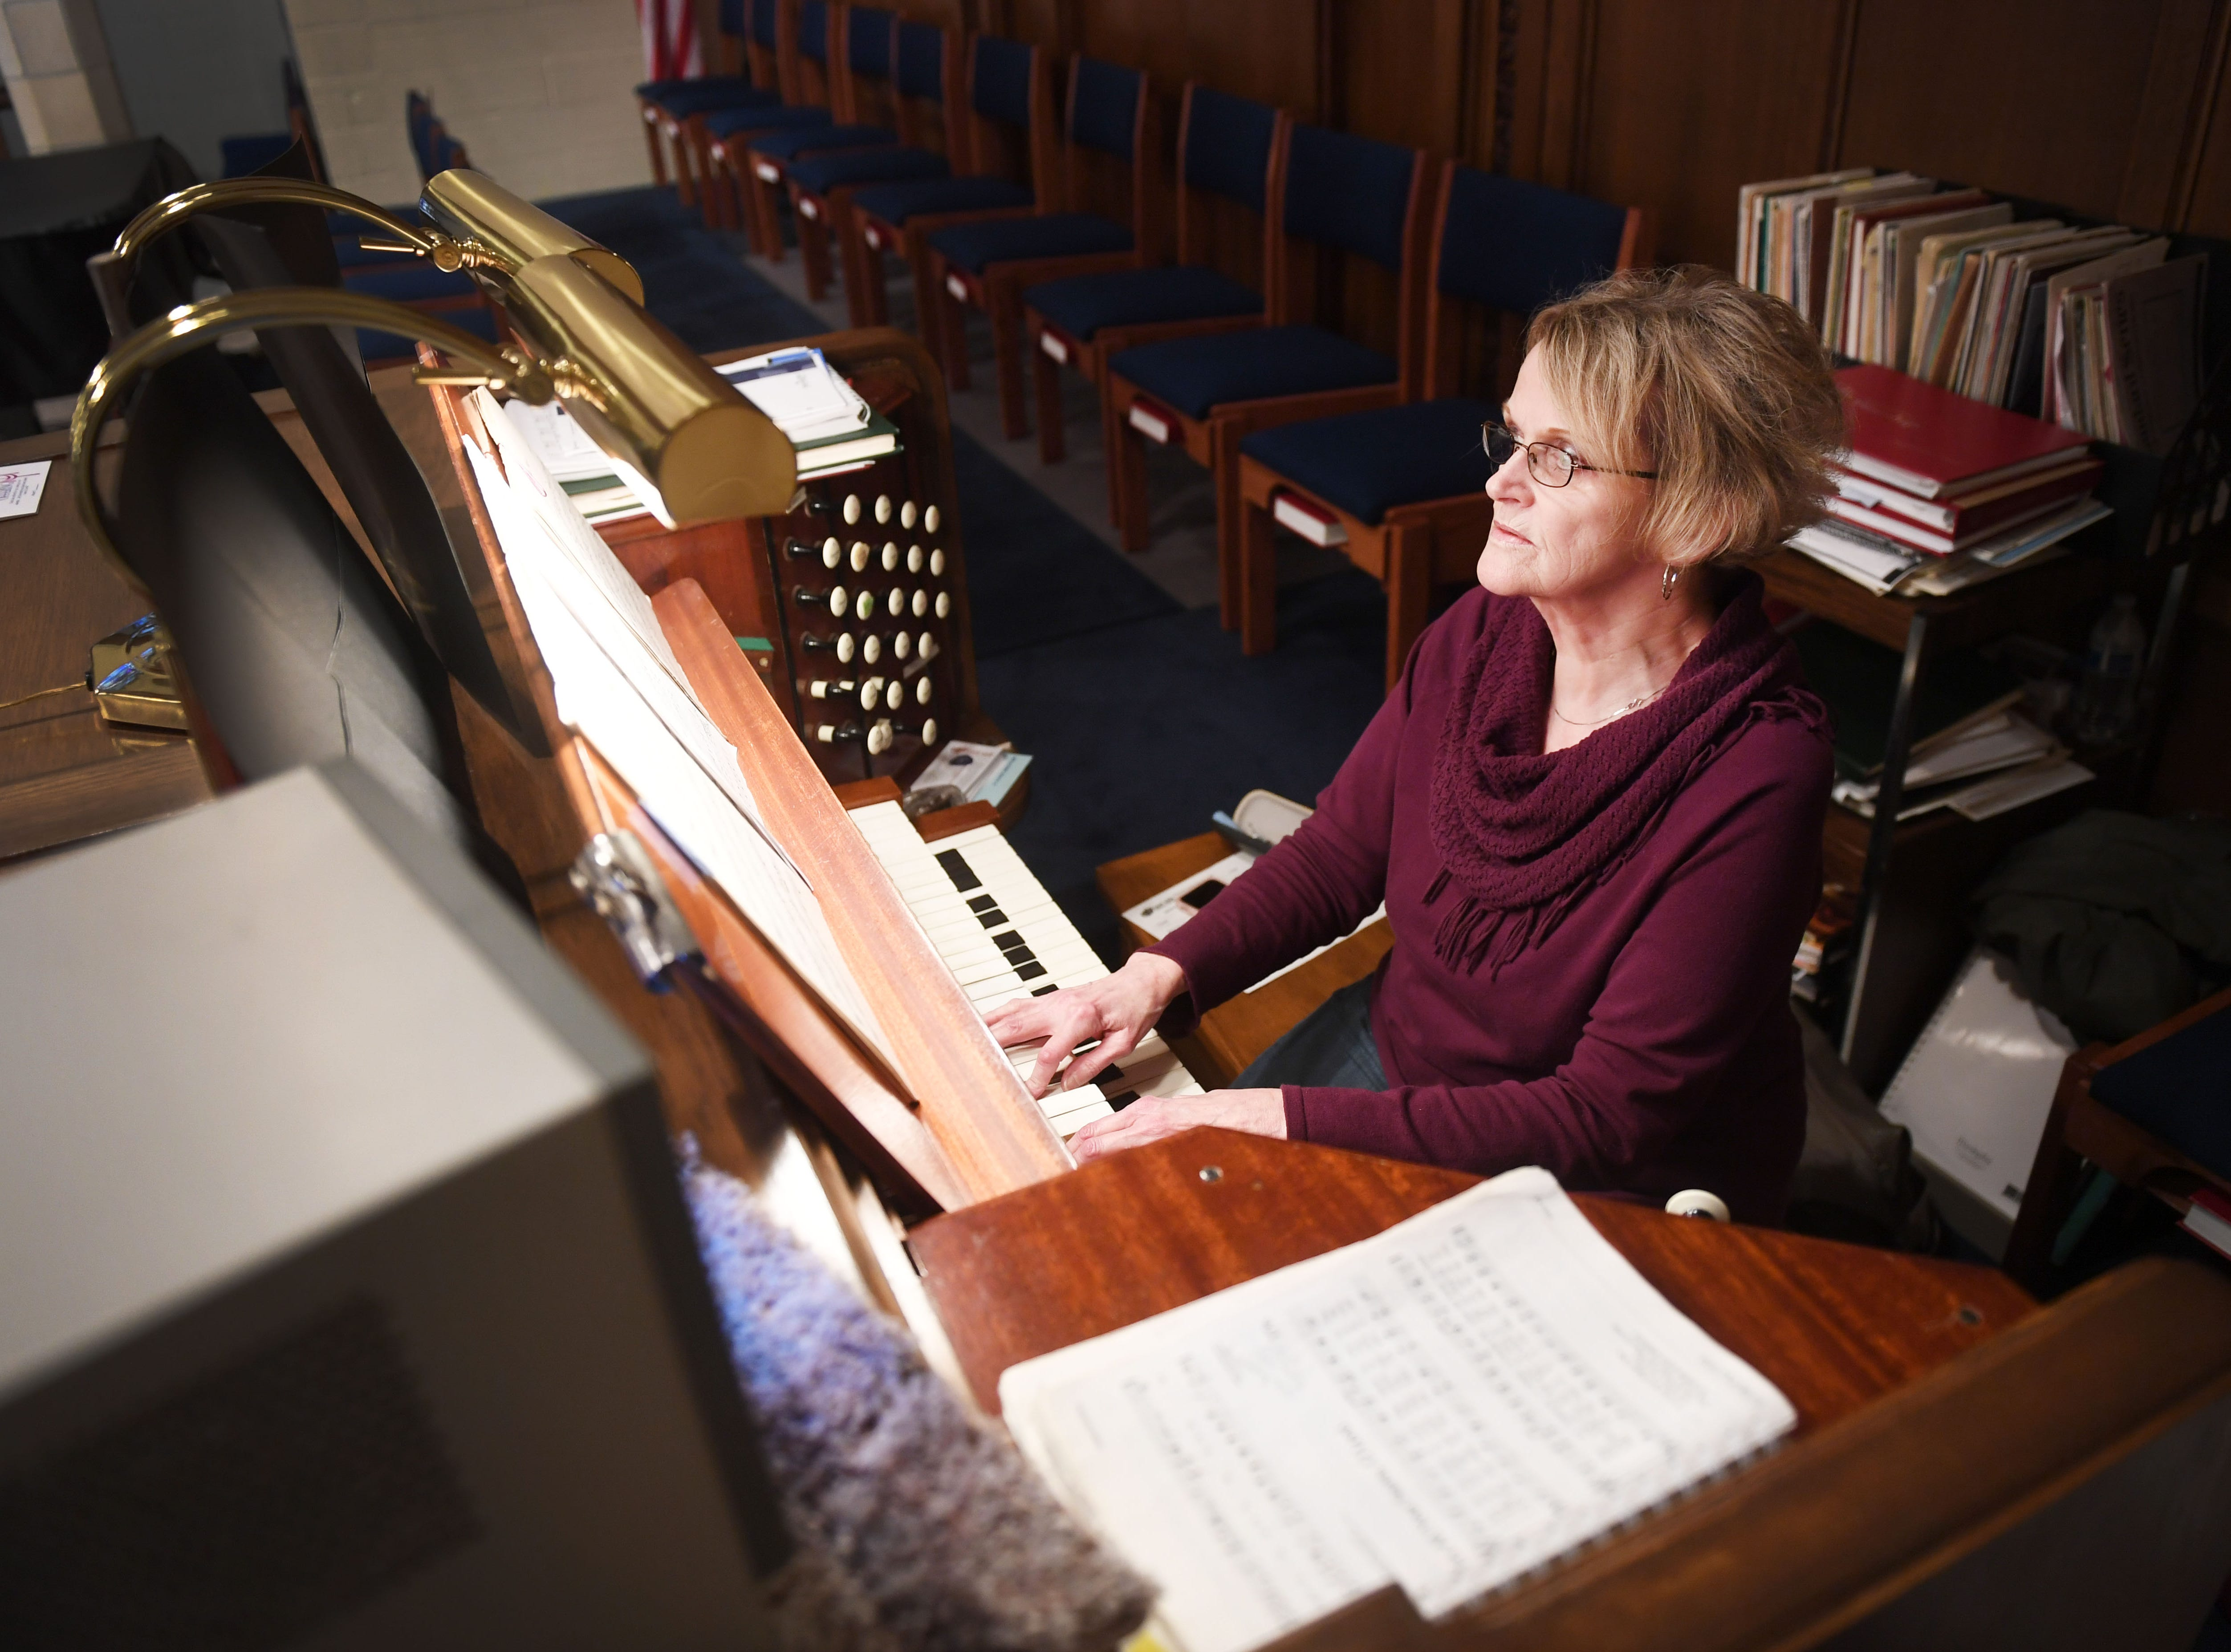 Organist Sandy DeSaix plays during the noon service at East Side Lutheran Church Wednesday, April 10, in Sioux Falls.